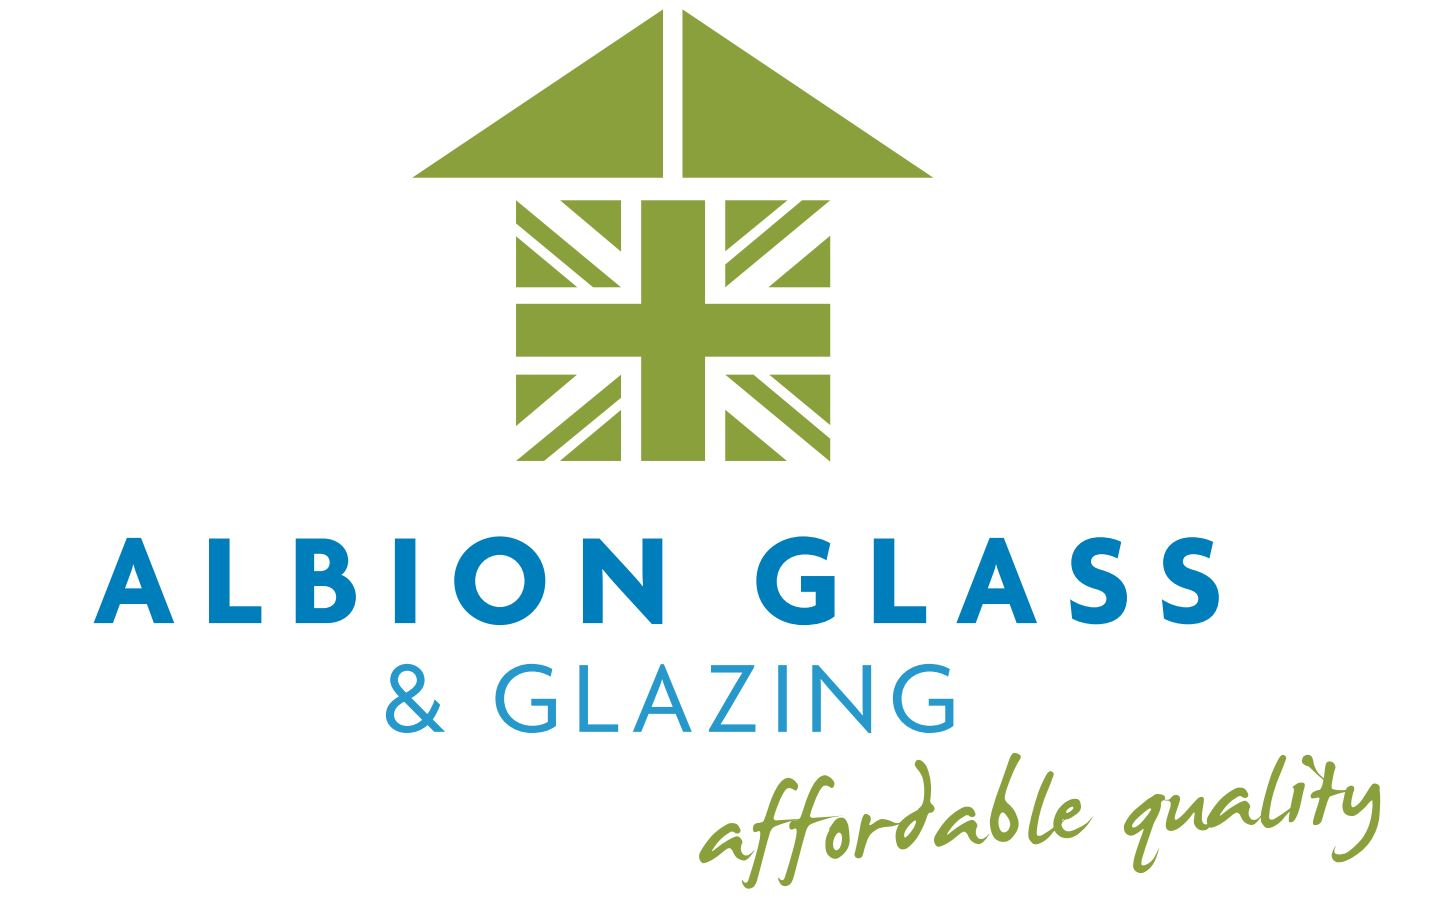 Affordable Quality from Albion Glass and Glazing